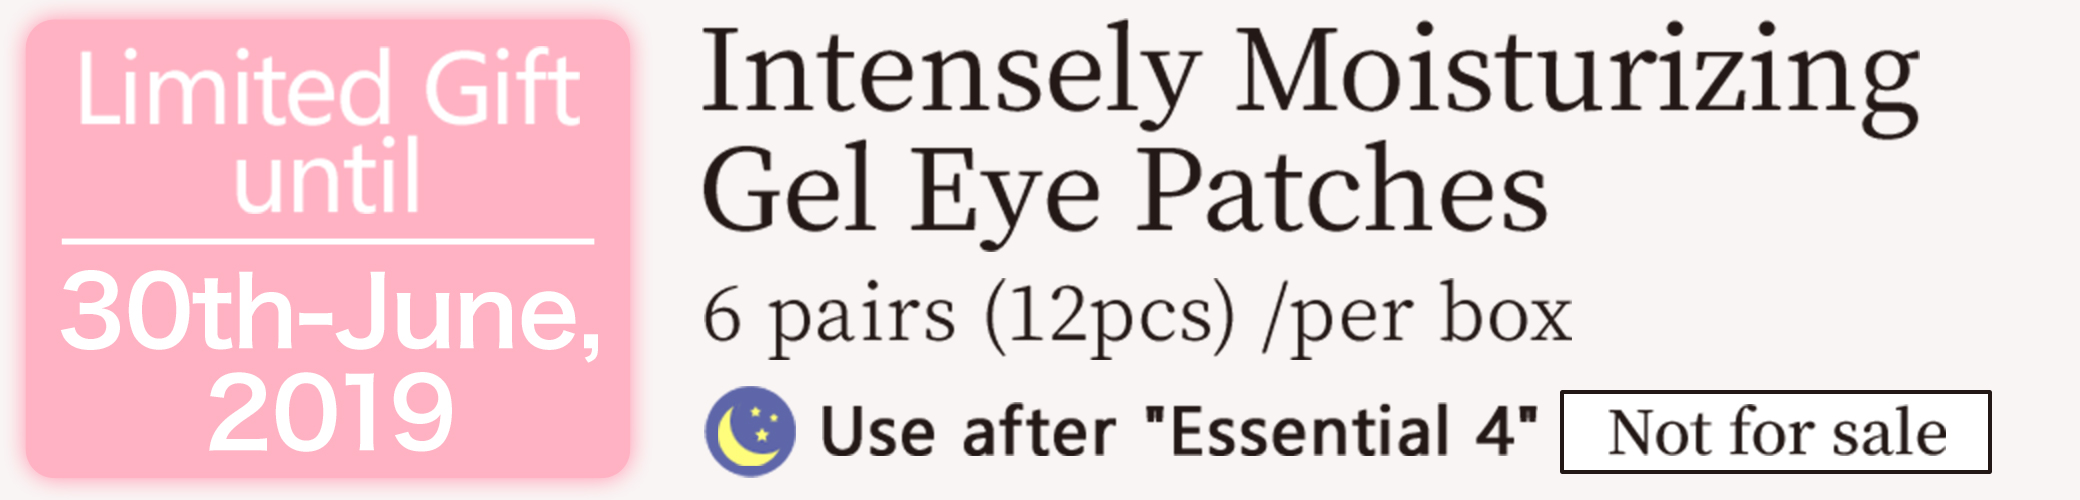 Limited Gift until 30th-June,2019 Intensely Moisturizing Gel Eye Patches 6 pairs (12pcs) /per box Use after